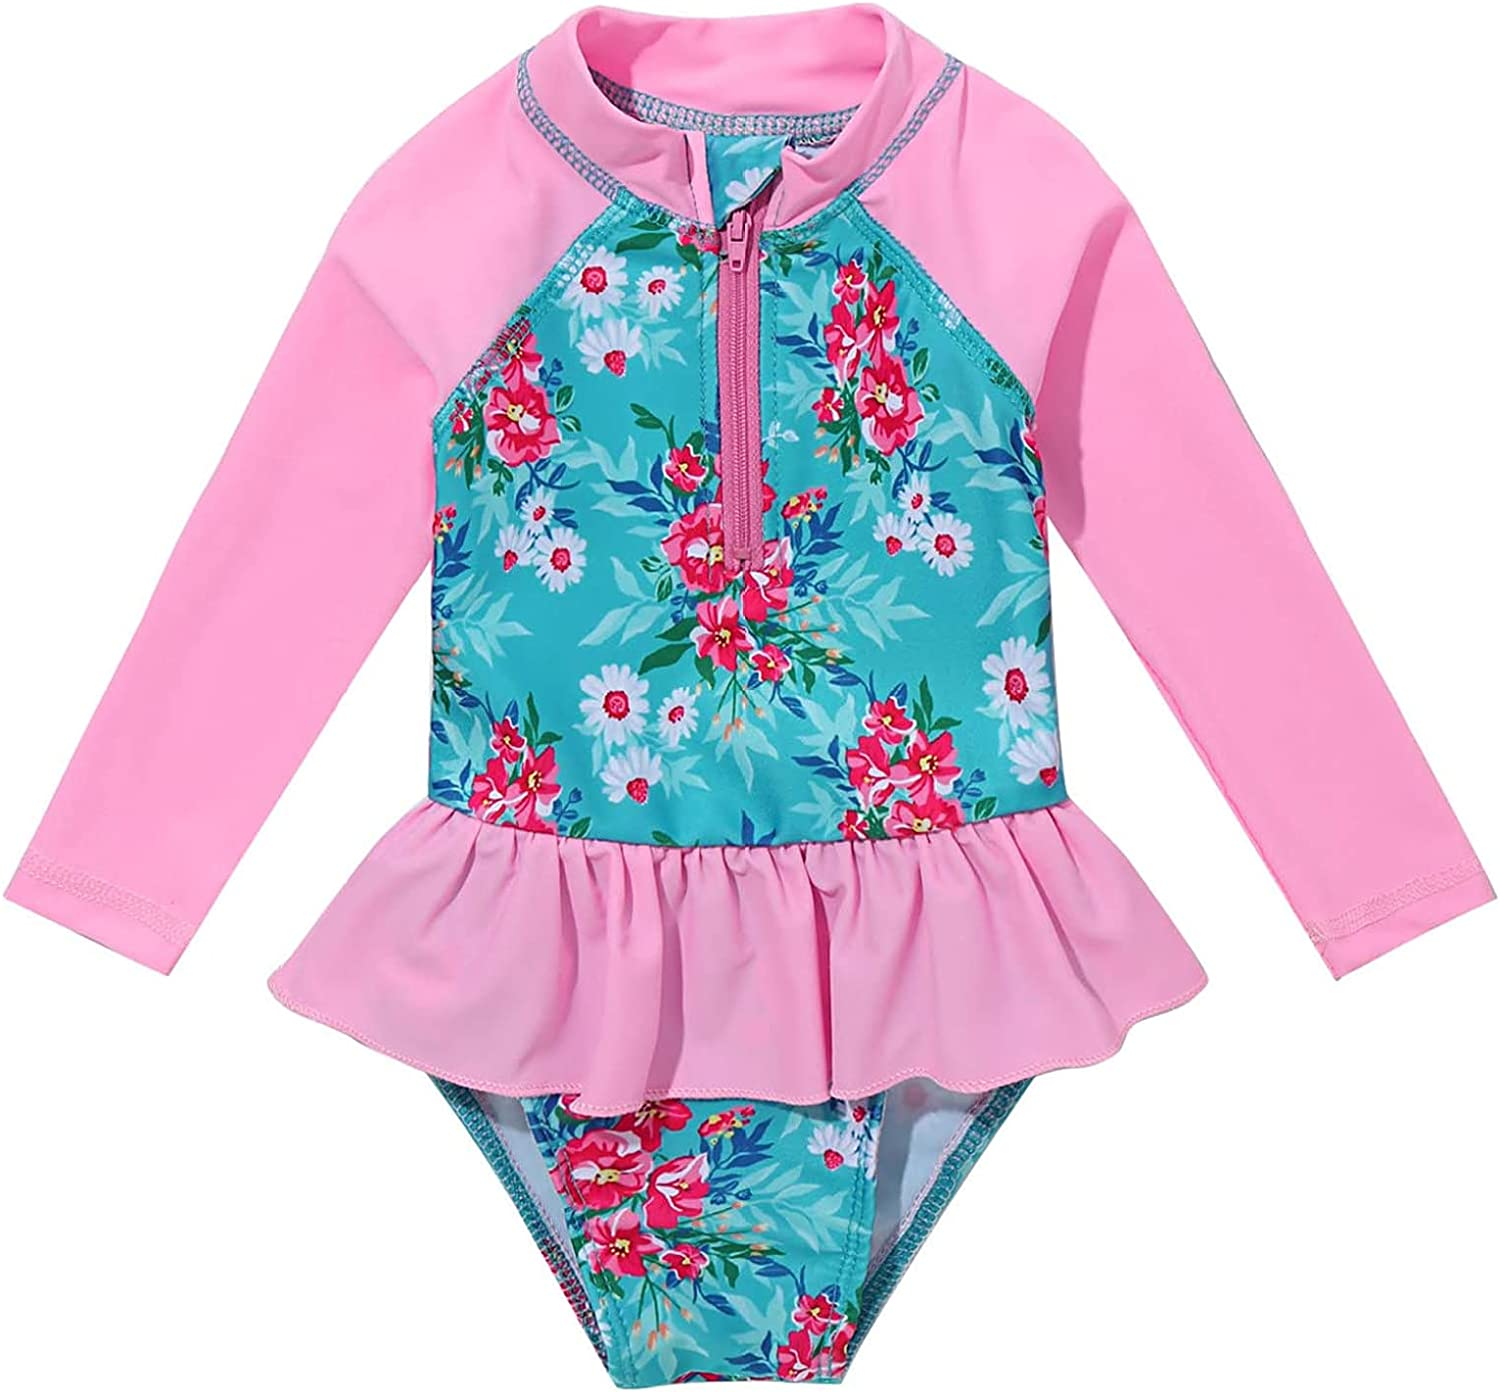 favorite Choomomo Infant Limited price Baby Girls Long Pie Ruffled Swimsuits Sleeve One